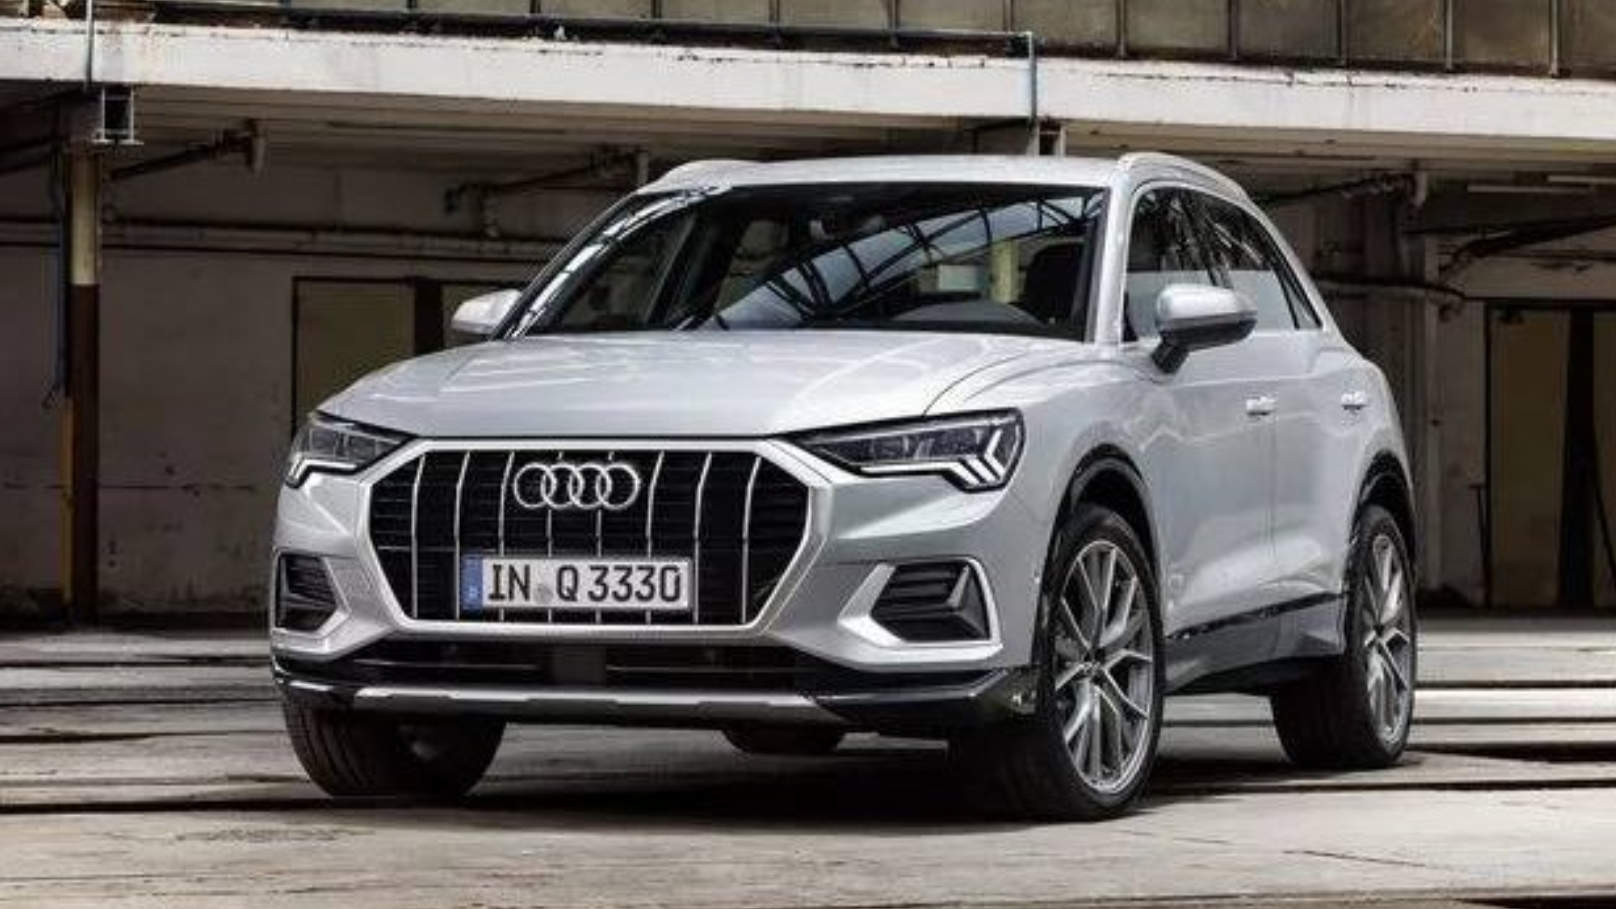 2019 audi q3 suv photos leaked ahead of global debut today. Black Bedroom Furniture Sets. Home Design Ideas